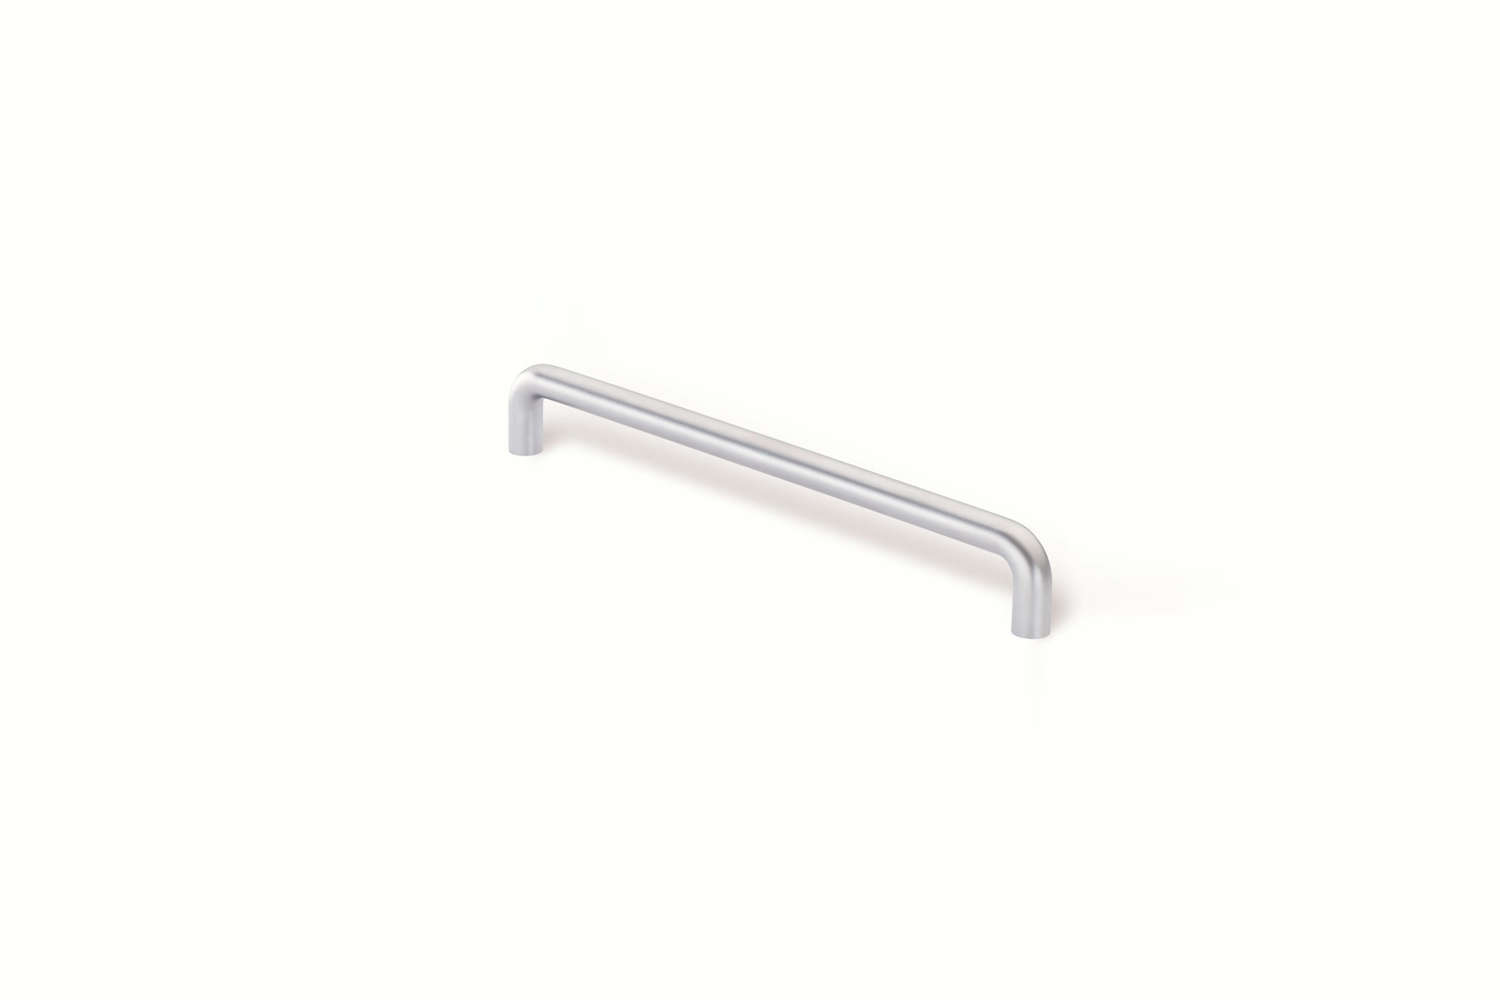 The Siro Designs Chicago Matte Chrome Wire Pull is available at Siro Designs.